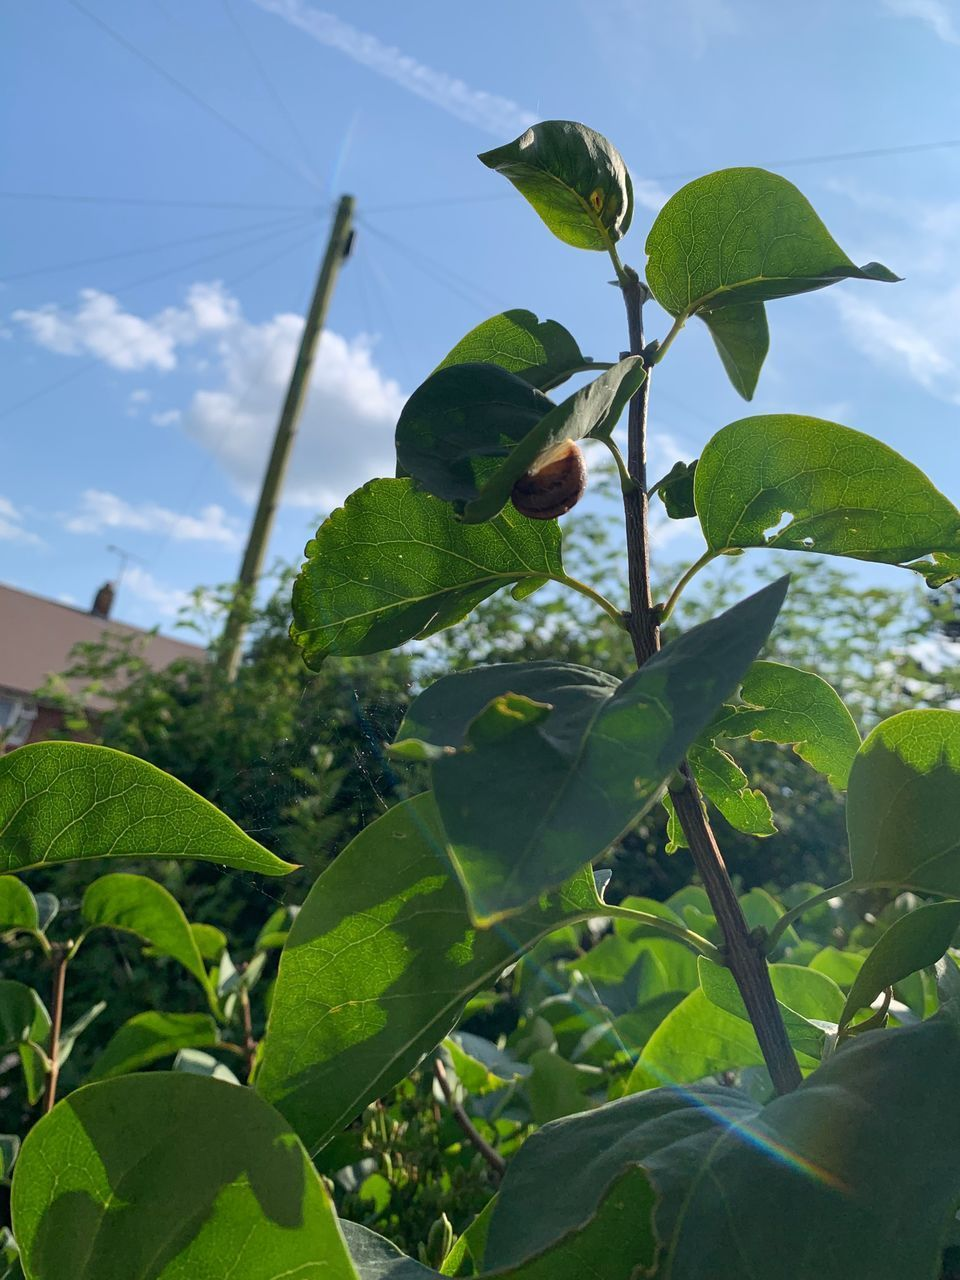 leaf, plant part, plant, growth, green color, nature, beauty in nature, no people, close-up, day, low angle view, tree, sky, freshness, focus on foreground, outdoors, food, fruit, food and drink, healthy eating